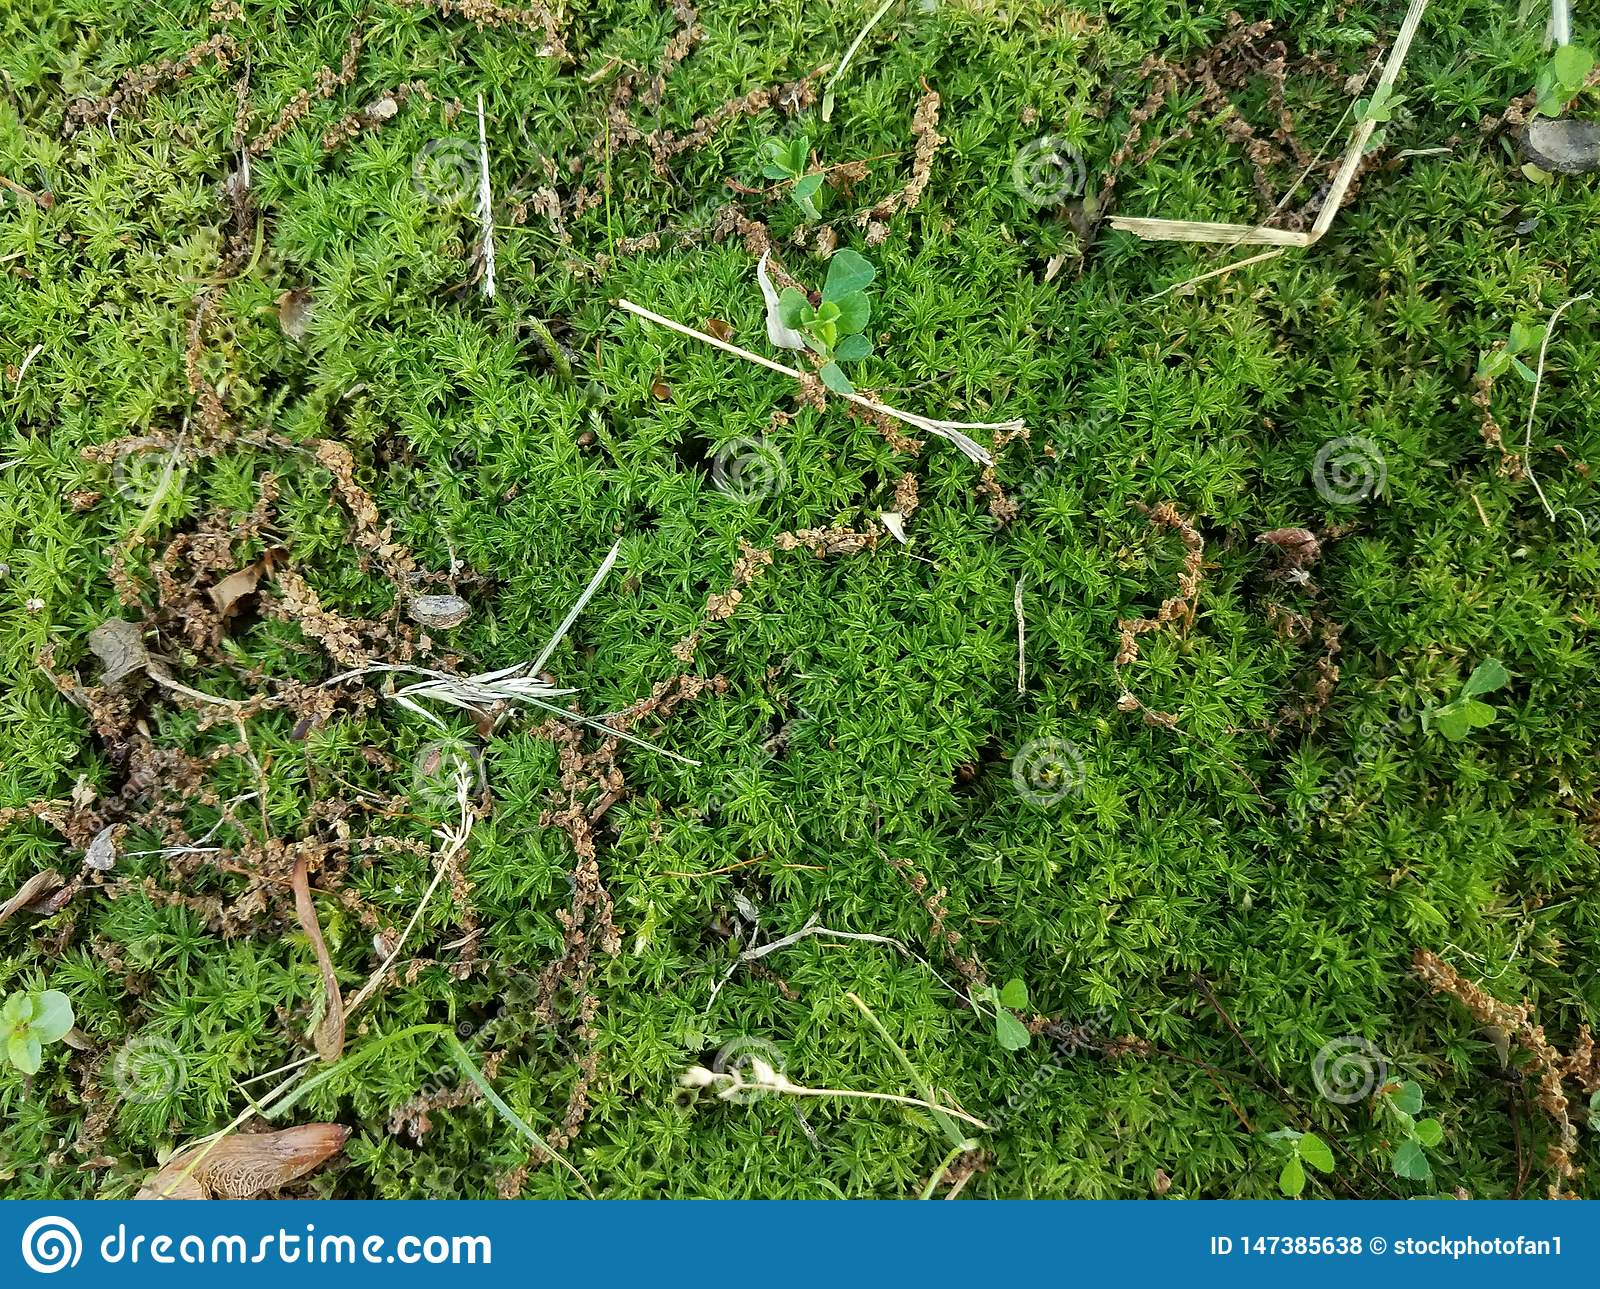 Green Moss And Grass And Weeds On Ground Outdoor Stock Photo